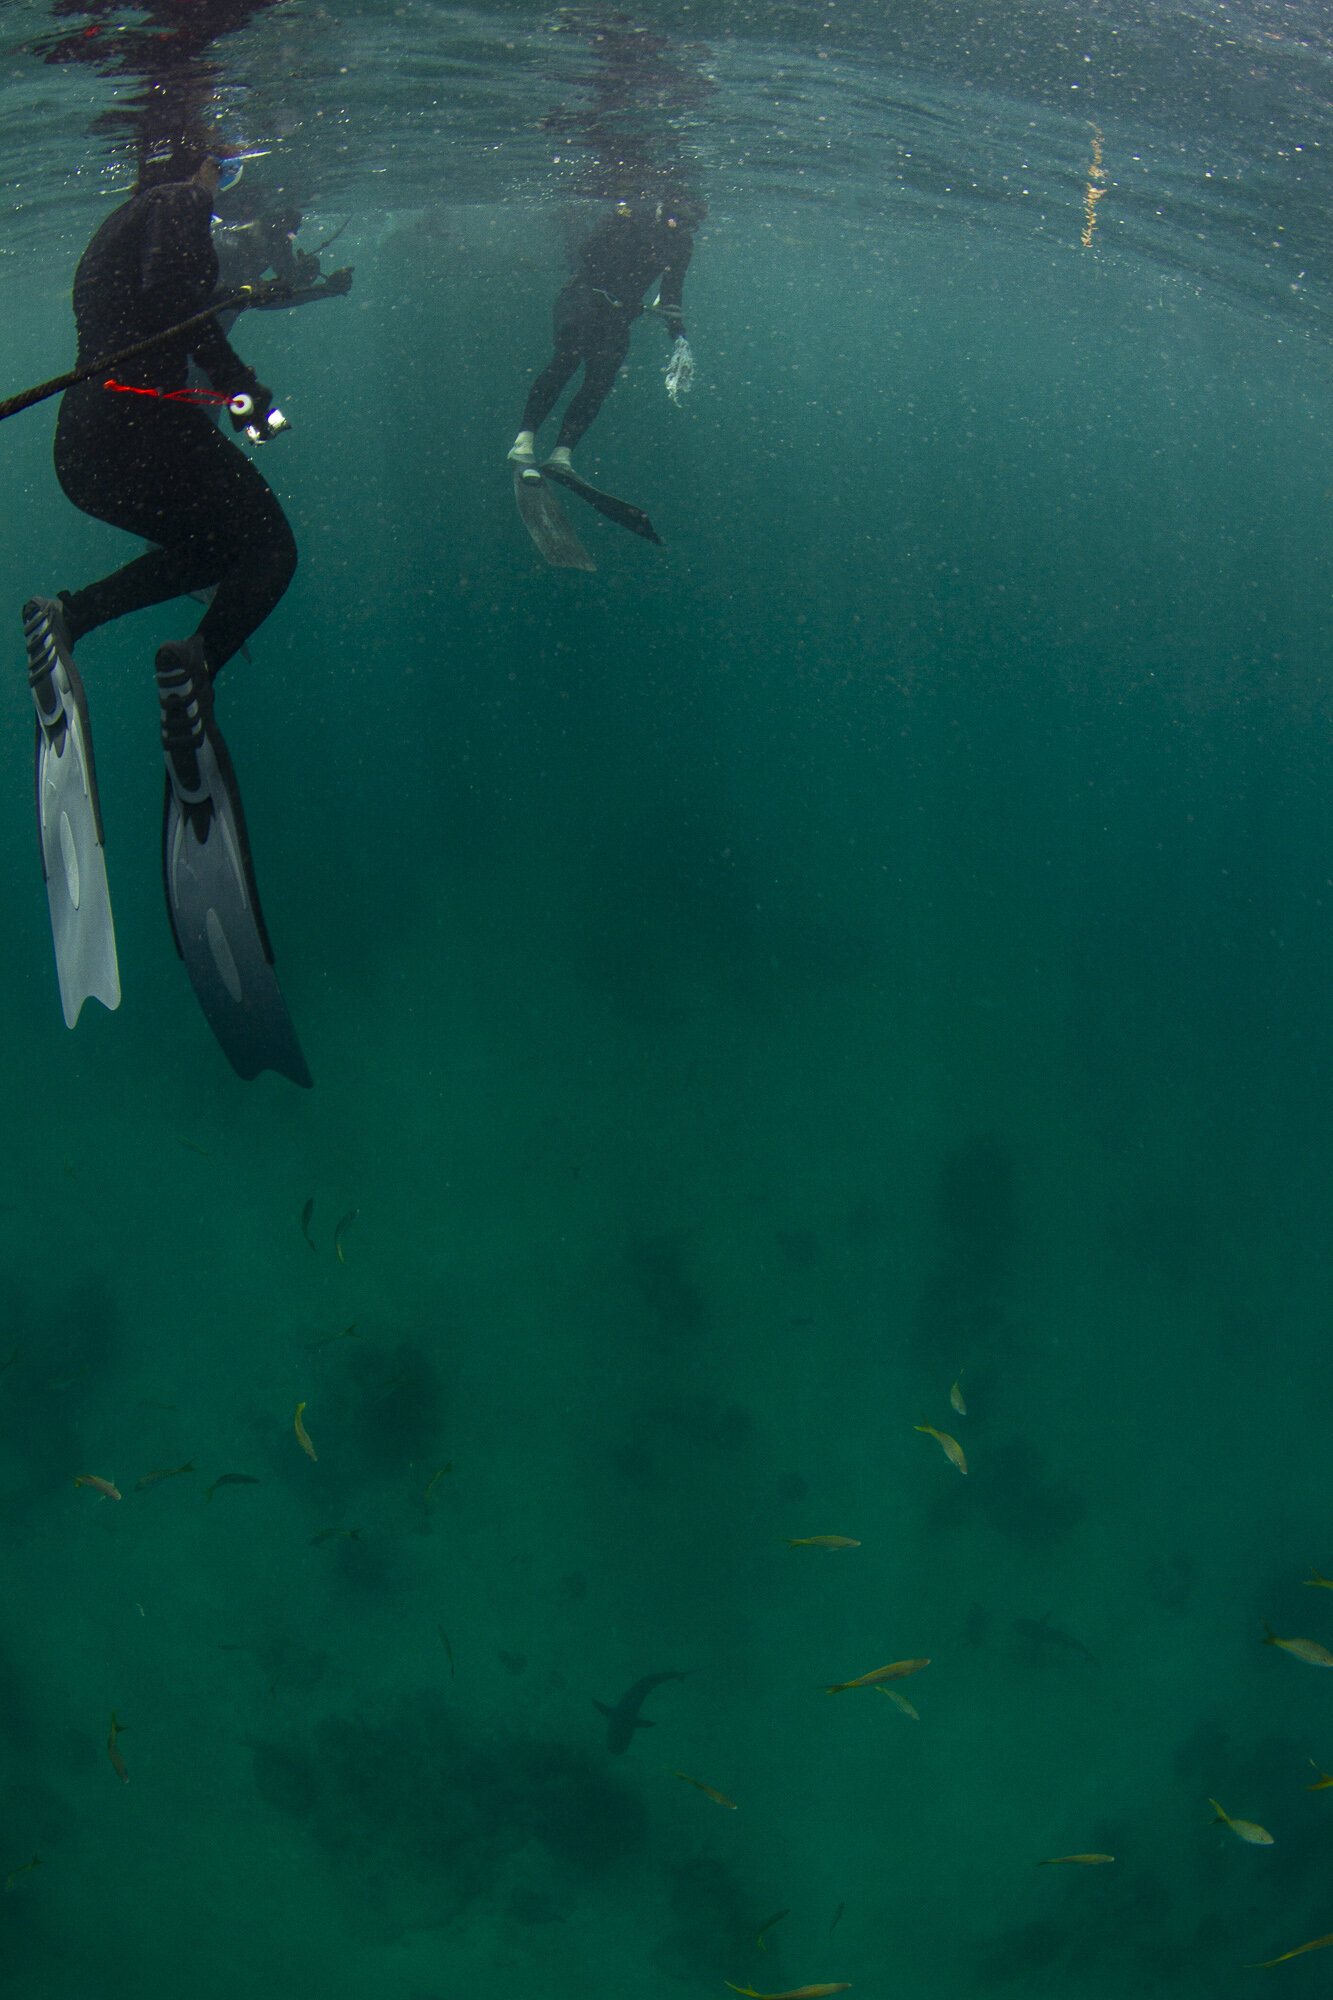 Guests gazed down on the sharks swimming below